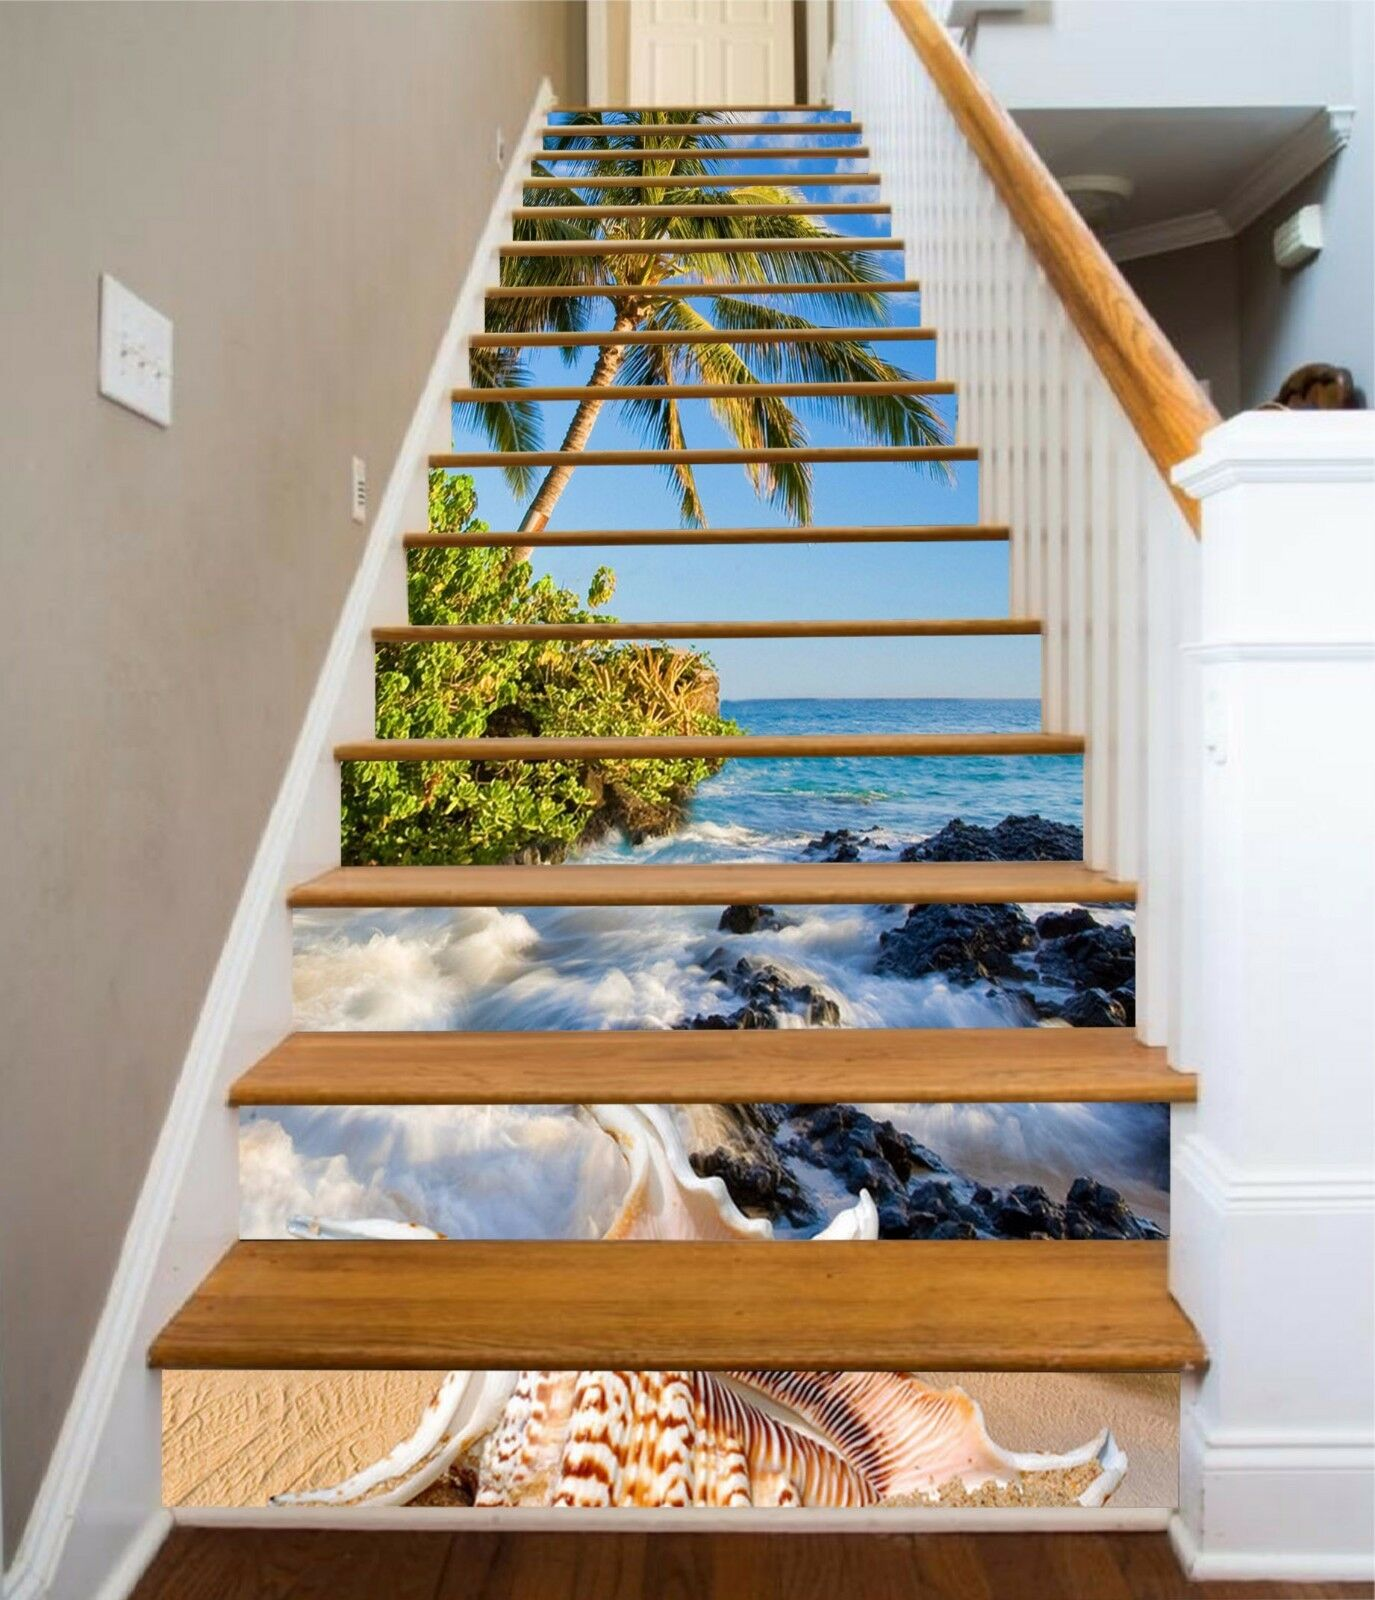 3D Coconut Tree  54 Stair Risers Decoration Photo Mural Vinyl Decal Wallpaper A